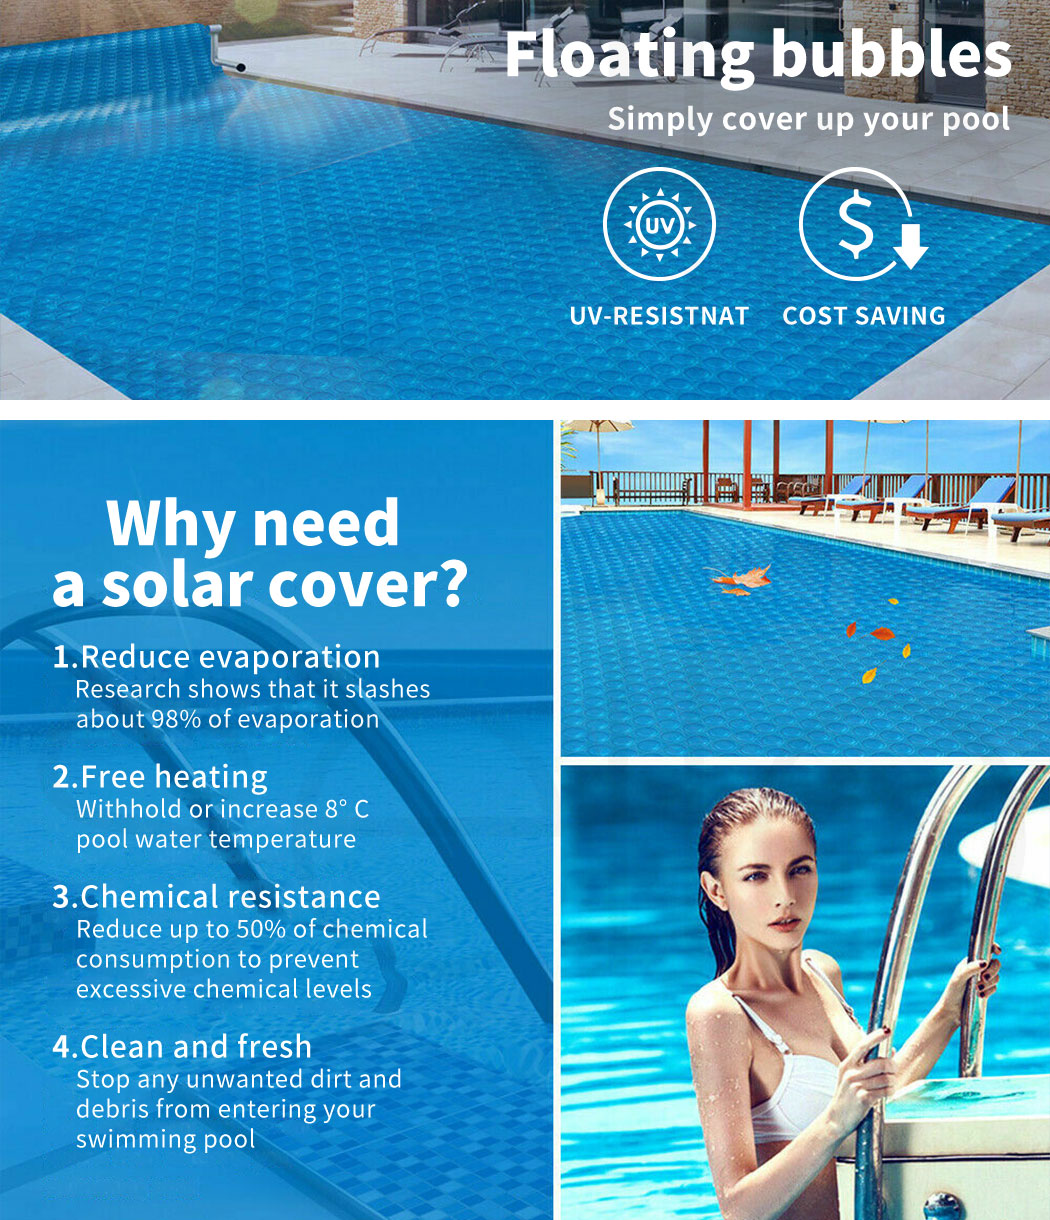 Solar-Swimming-Pool-Cover-400-500-Micron-Outdoor-Bubble-Blanket-Covers-7-Sizes thumbnail 163